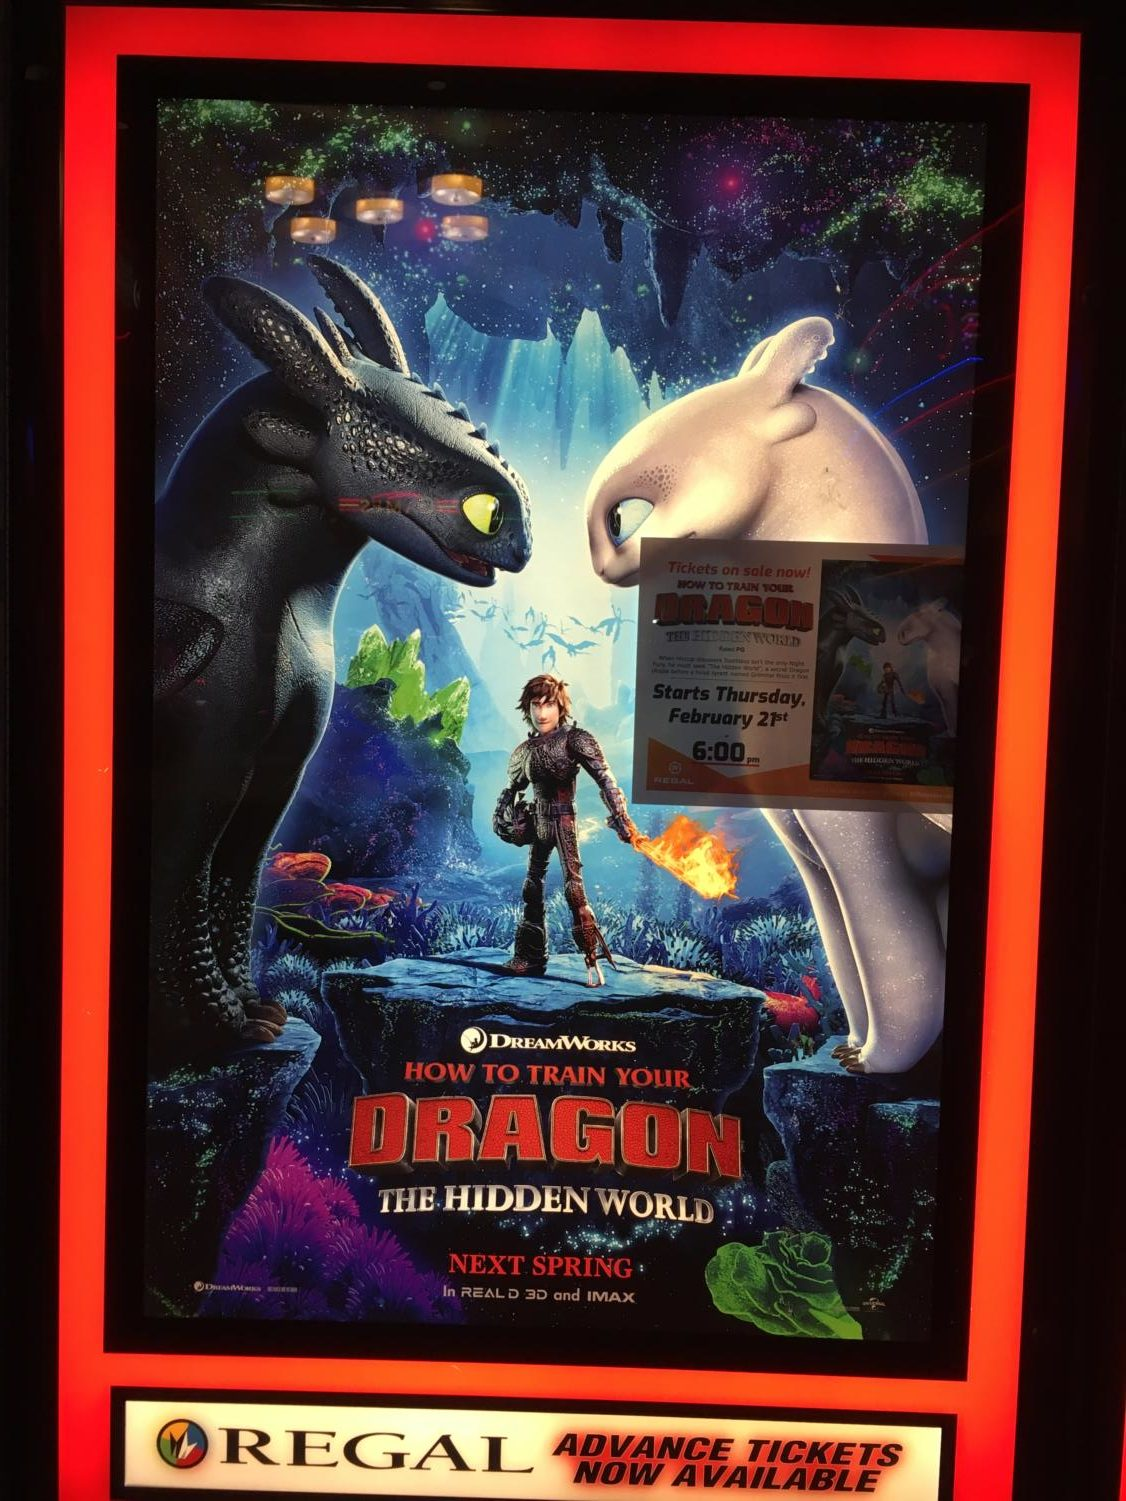 How to Train Your Dragon: Hidden World concludes the beautiful story between Hiccup and Toothless.